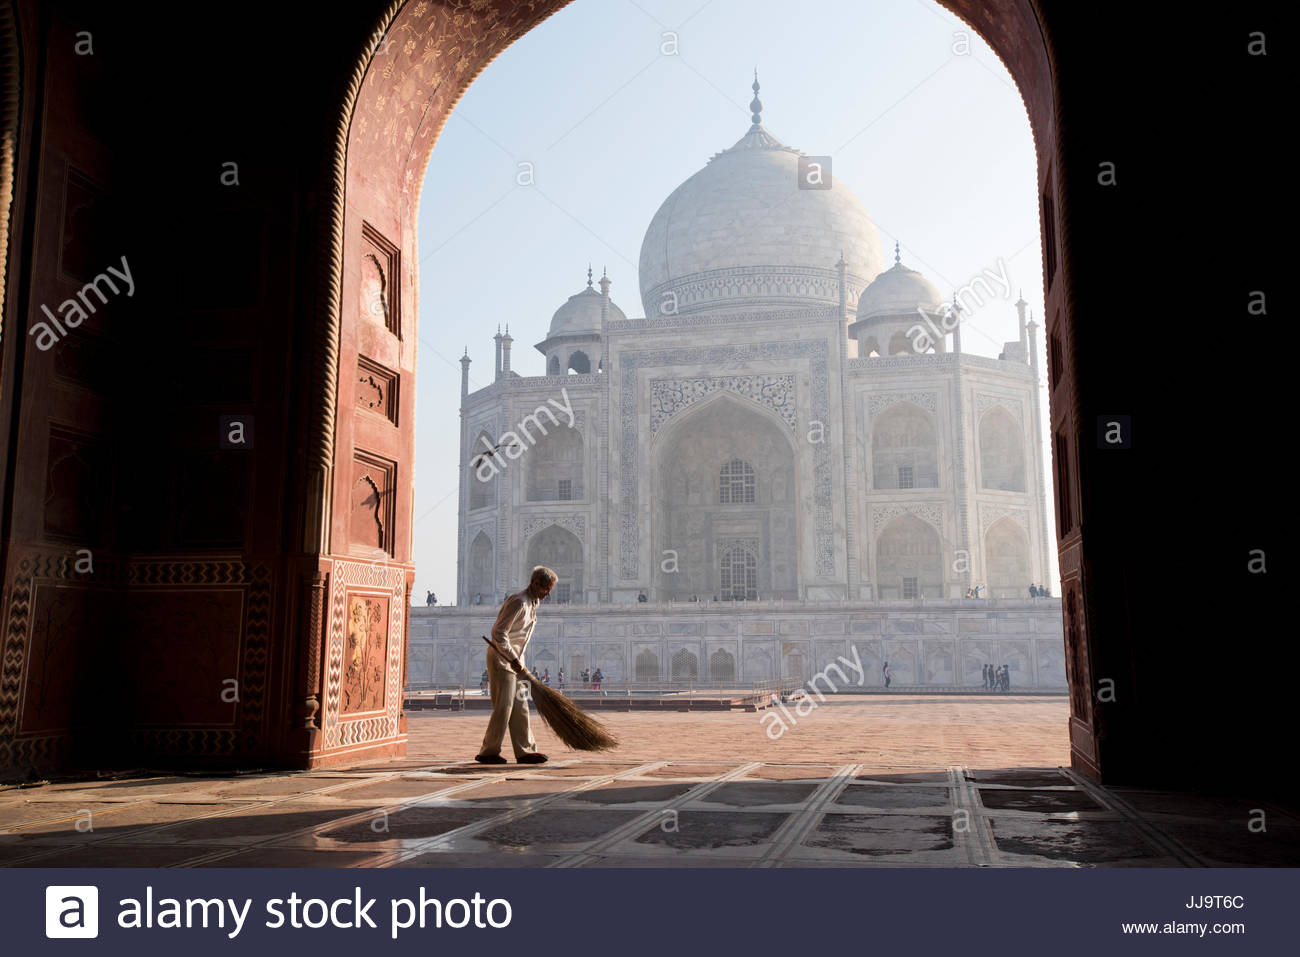 An Indian man sweeping the entry way of the mosque next to the Taj Mahal in Agra, India. - Stock Image